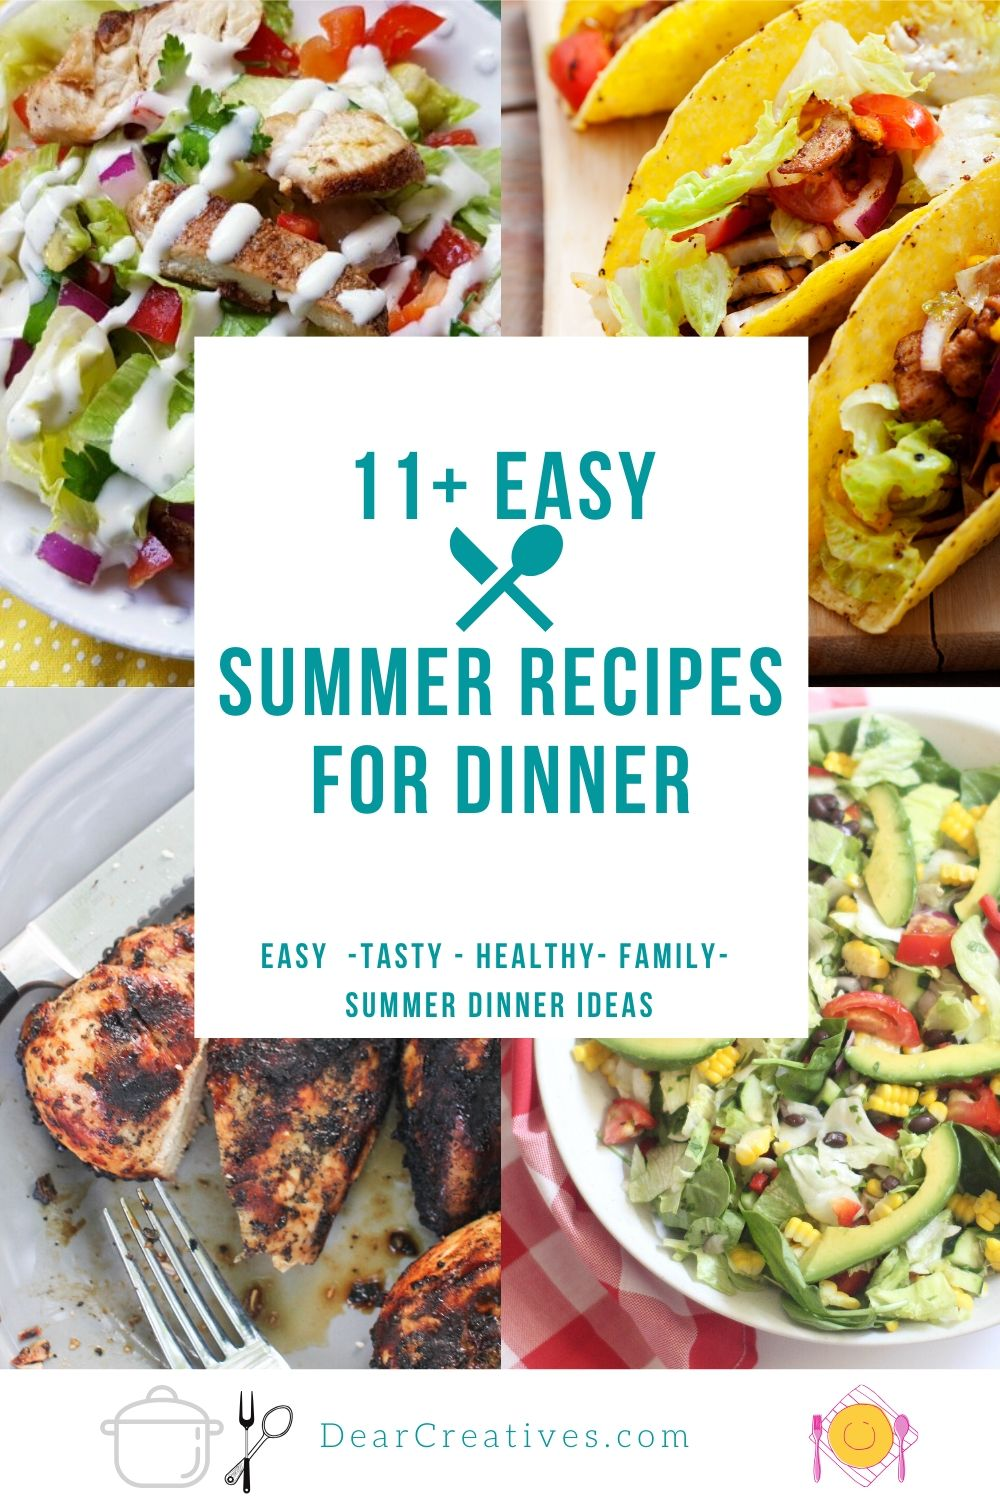 Summer Recipes For Dinner!